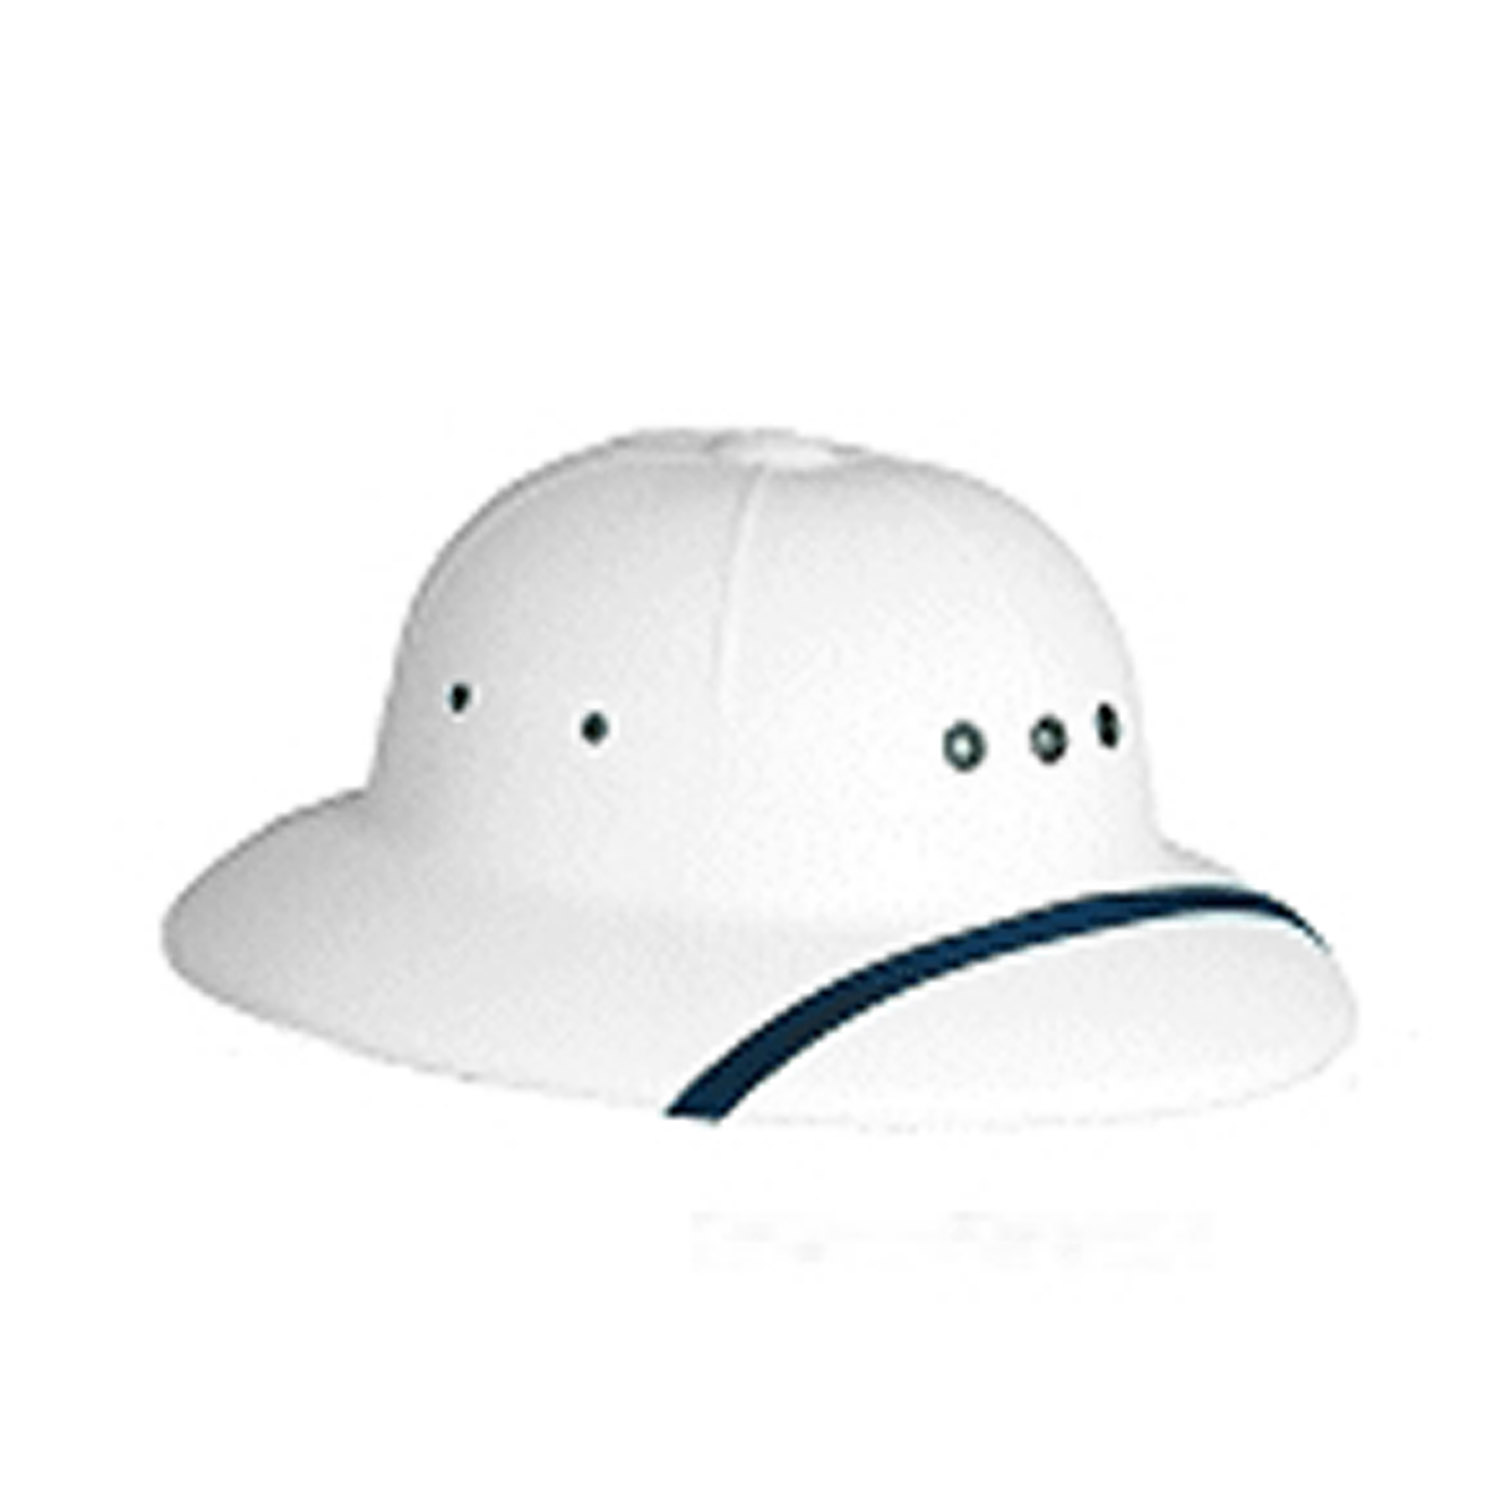 Plastic Sun Helmet for Letter Carriers and Motor Vehicle Service Operators 0059128a517